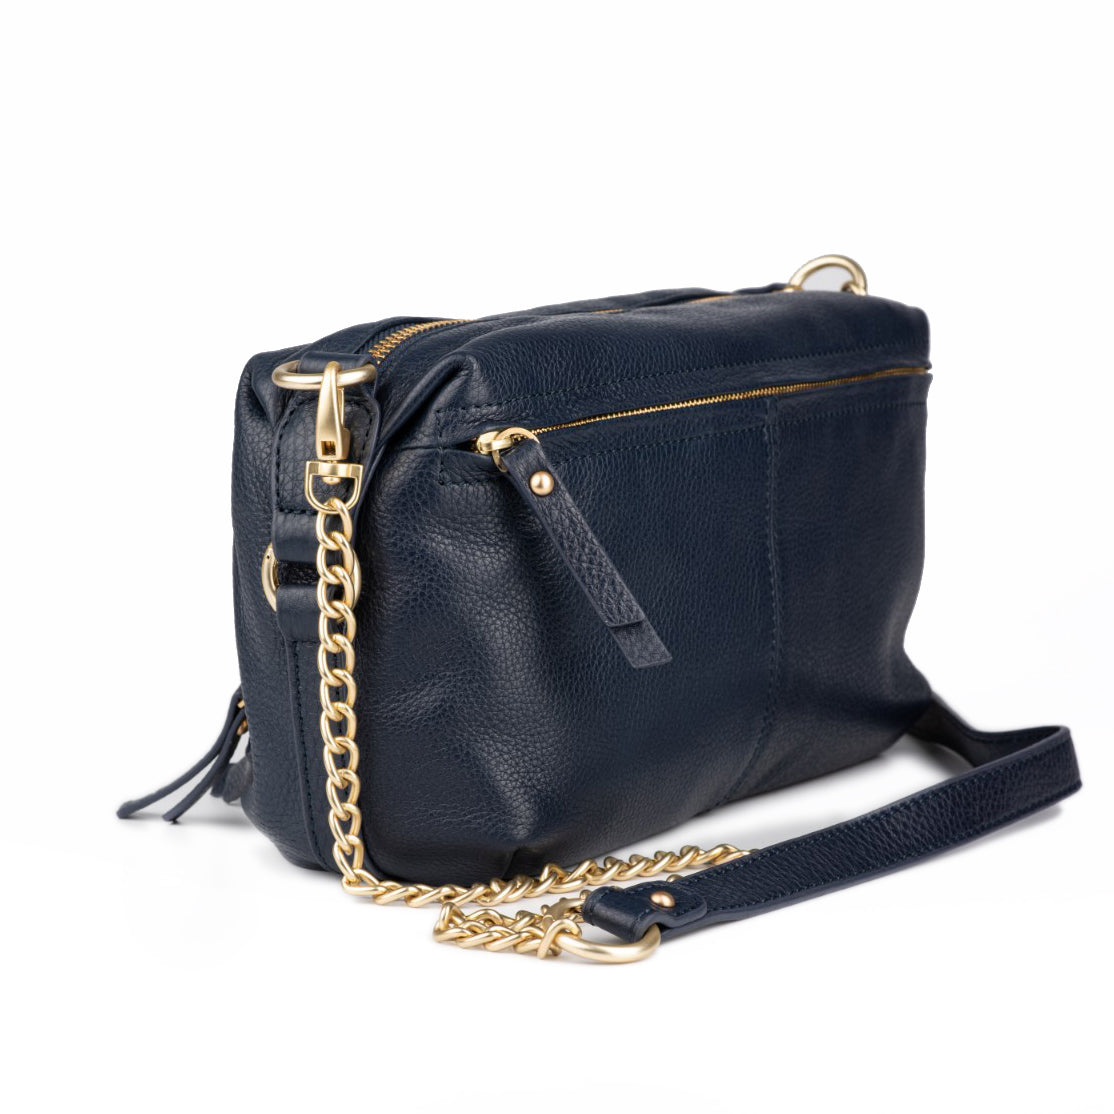 9-Way Leather Bag